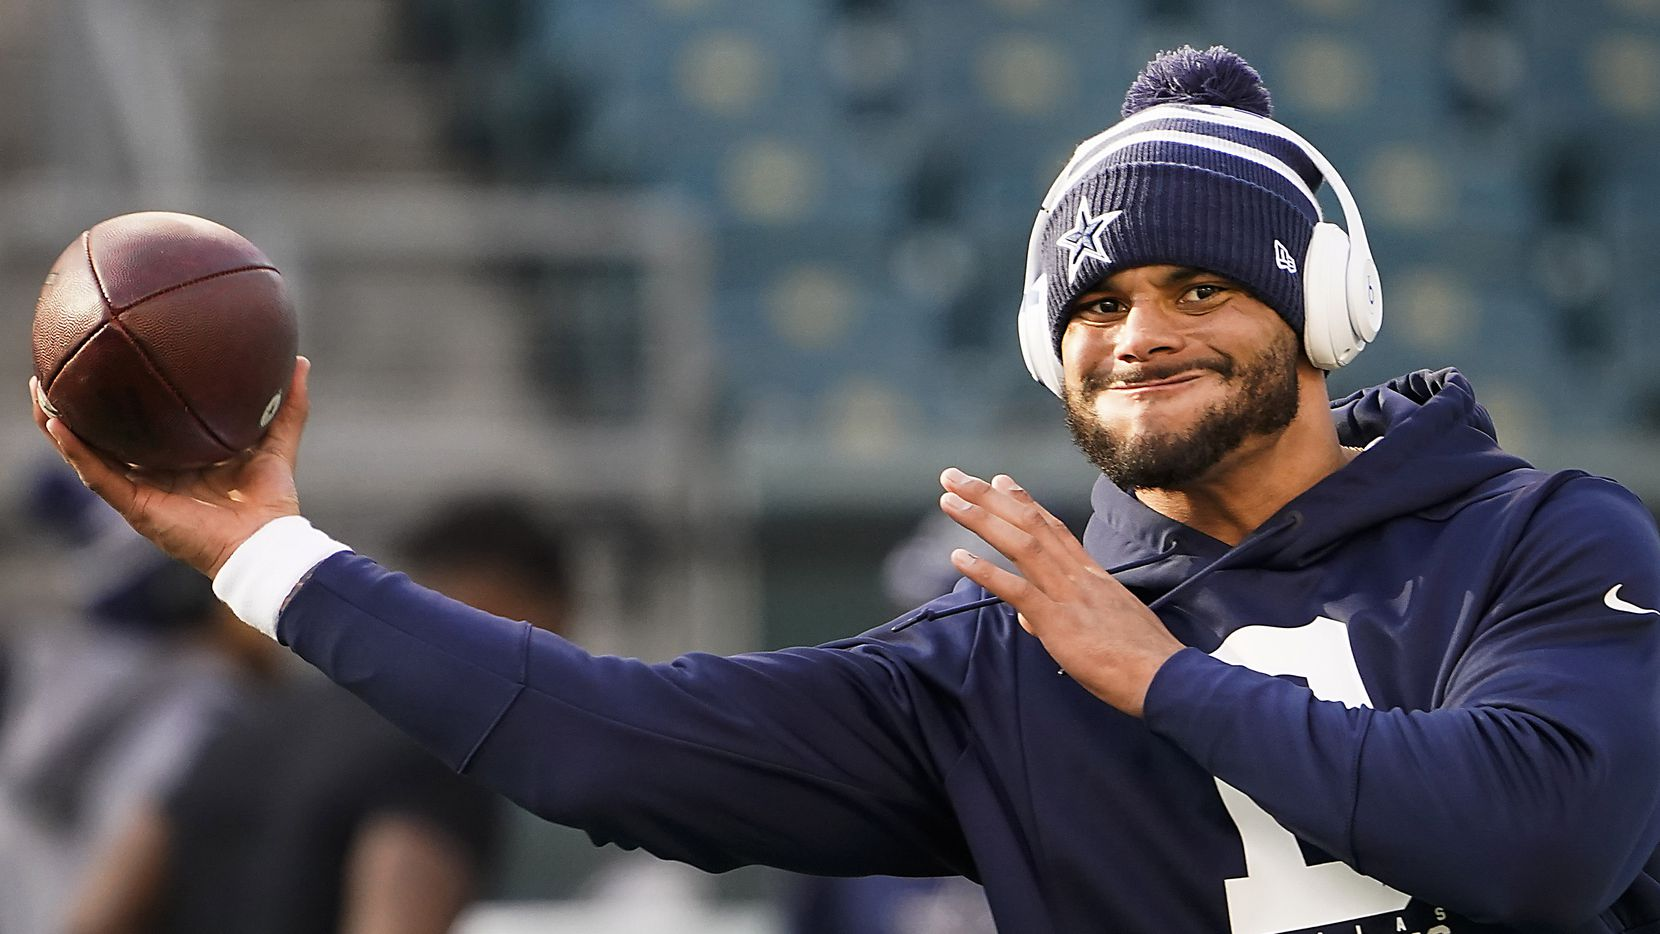 Dallas Cowboys quarterback Dak Prescott warms up before an NFL football game against the Philadelphia Eagles at Lincoln Financial Field on Sunday, Dec. 22, 2019, in Philadelphia. (Smiley N. Pool/The Dallas Morning News)